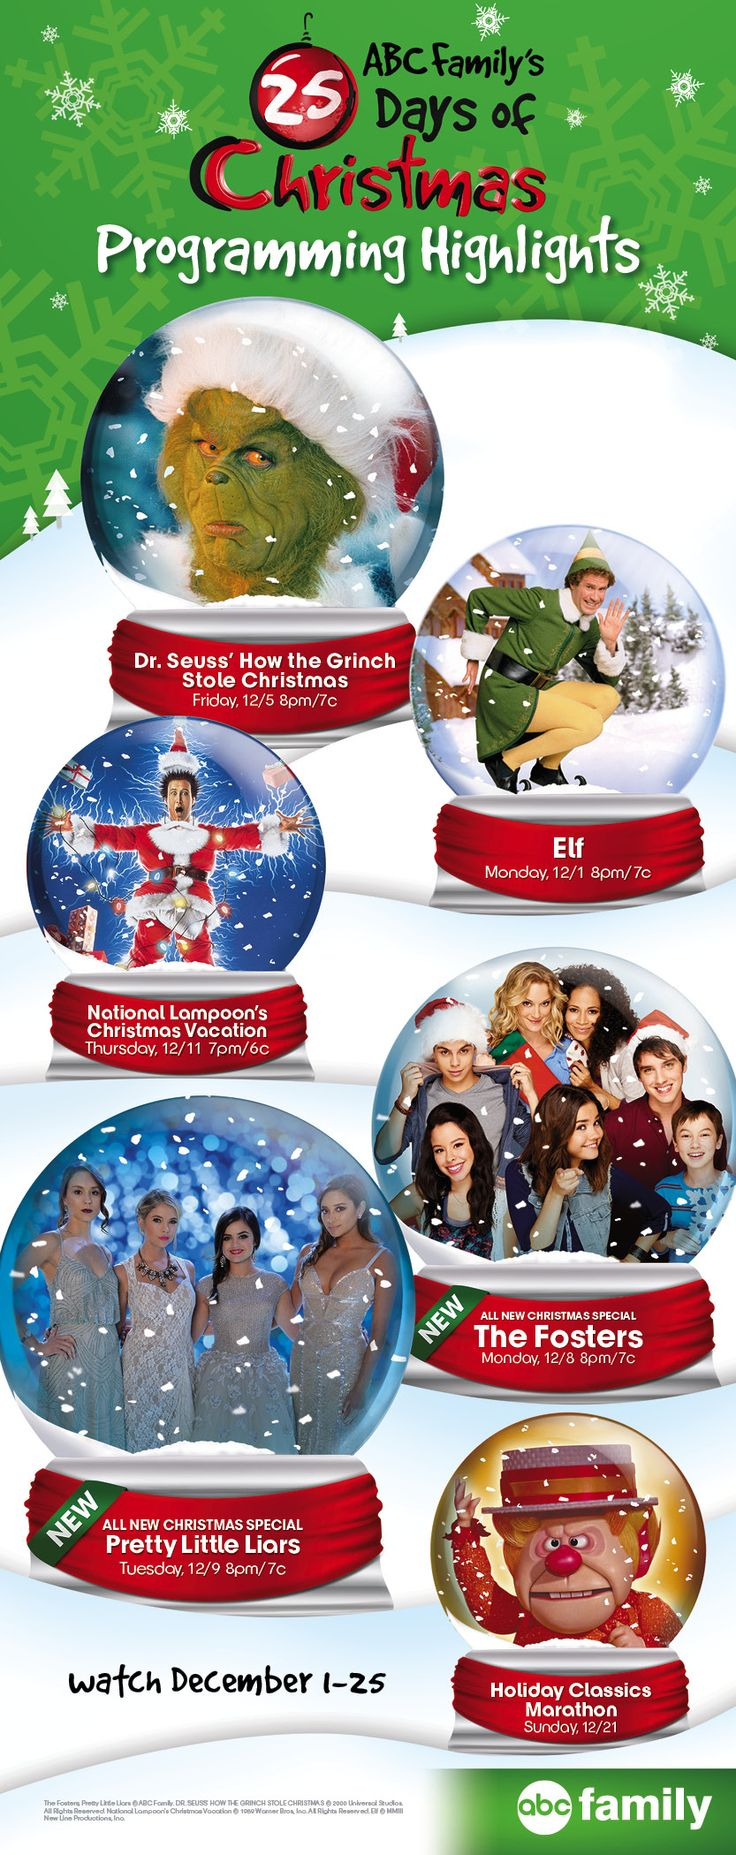 Watch ABC Family's 25 Days of Christmas Dec 1-25, 2014! Click to see the full schedule of what's airing this year including Elf, Dr. Seuss's How the Grinch Stole Christmas, National Lampoon's Christmas Vacation, The Year Without a Santa Claus and holiday episodes of your favorite ABC Family original series!